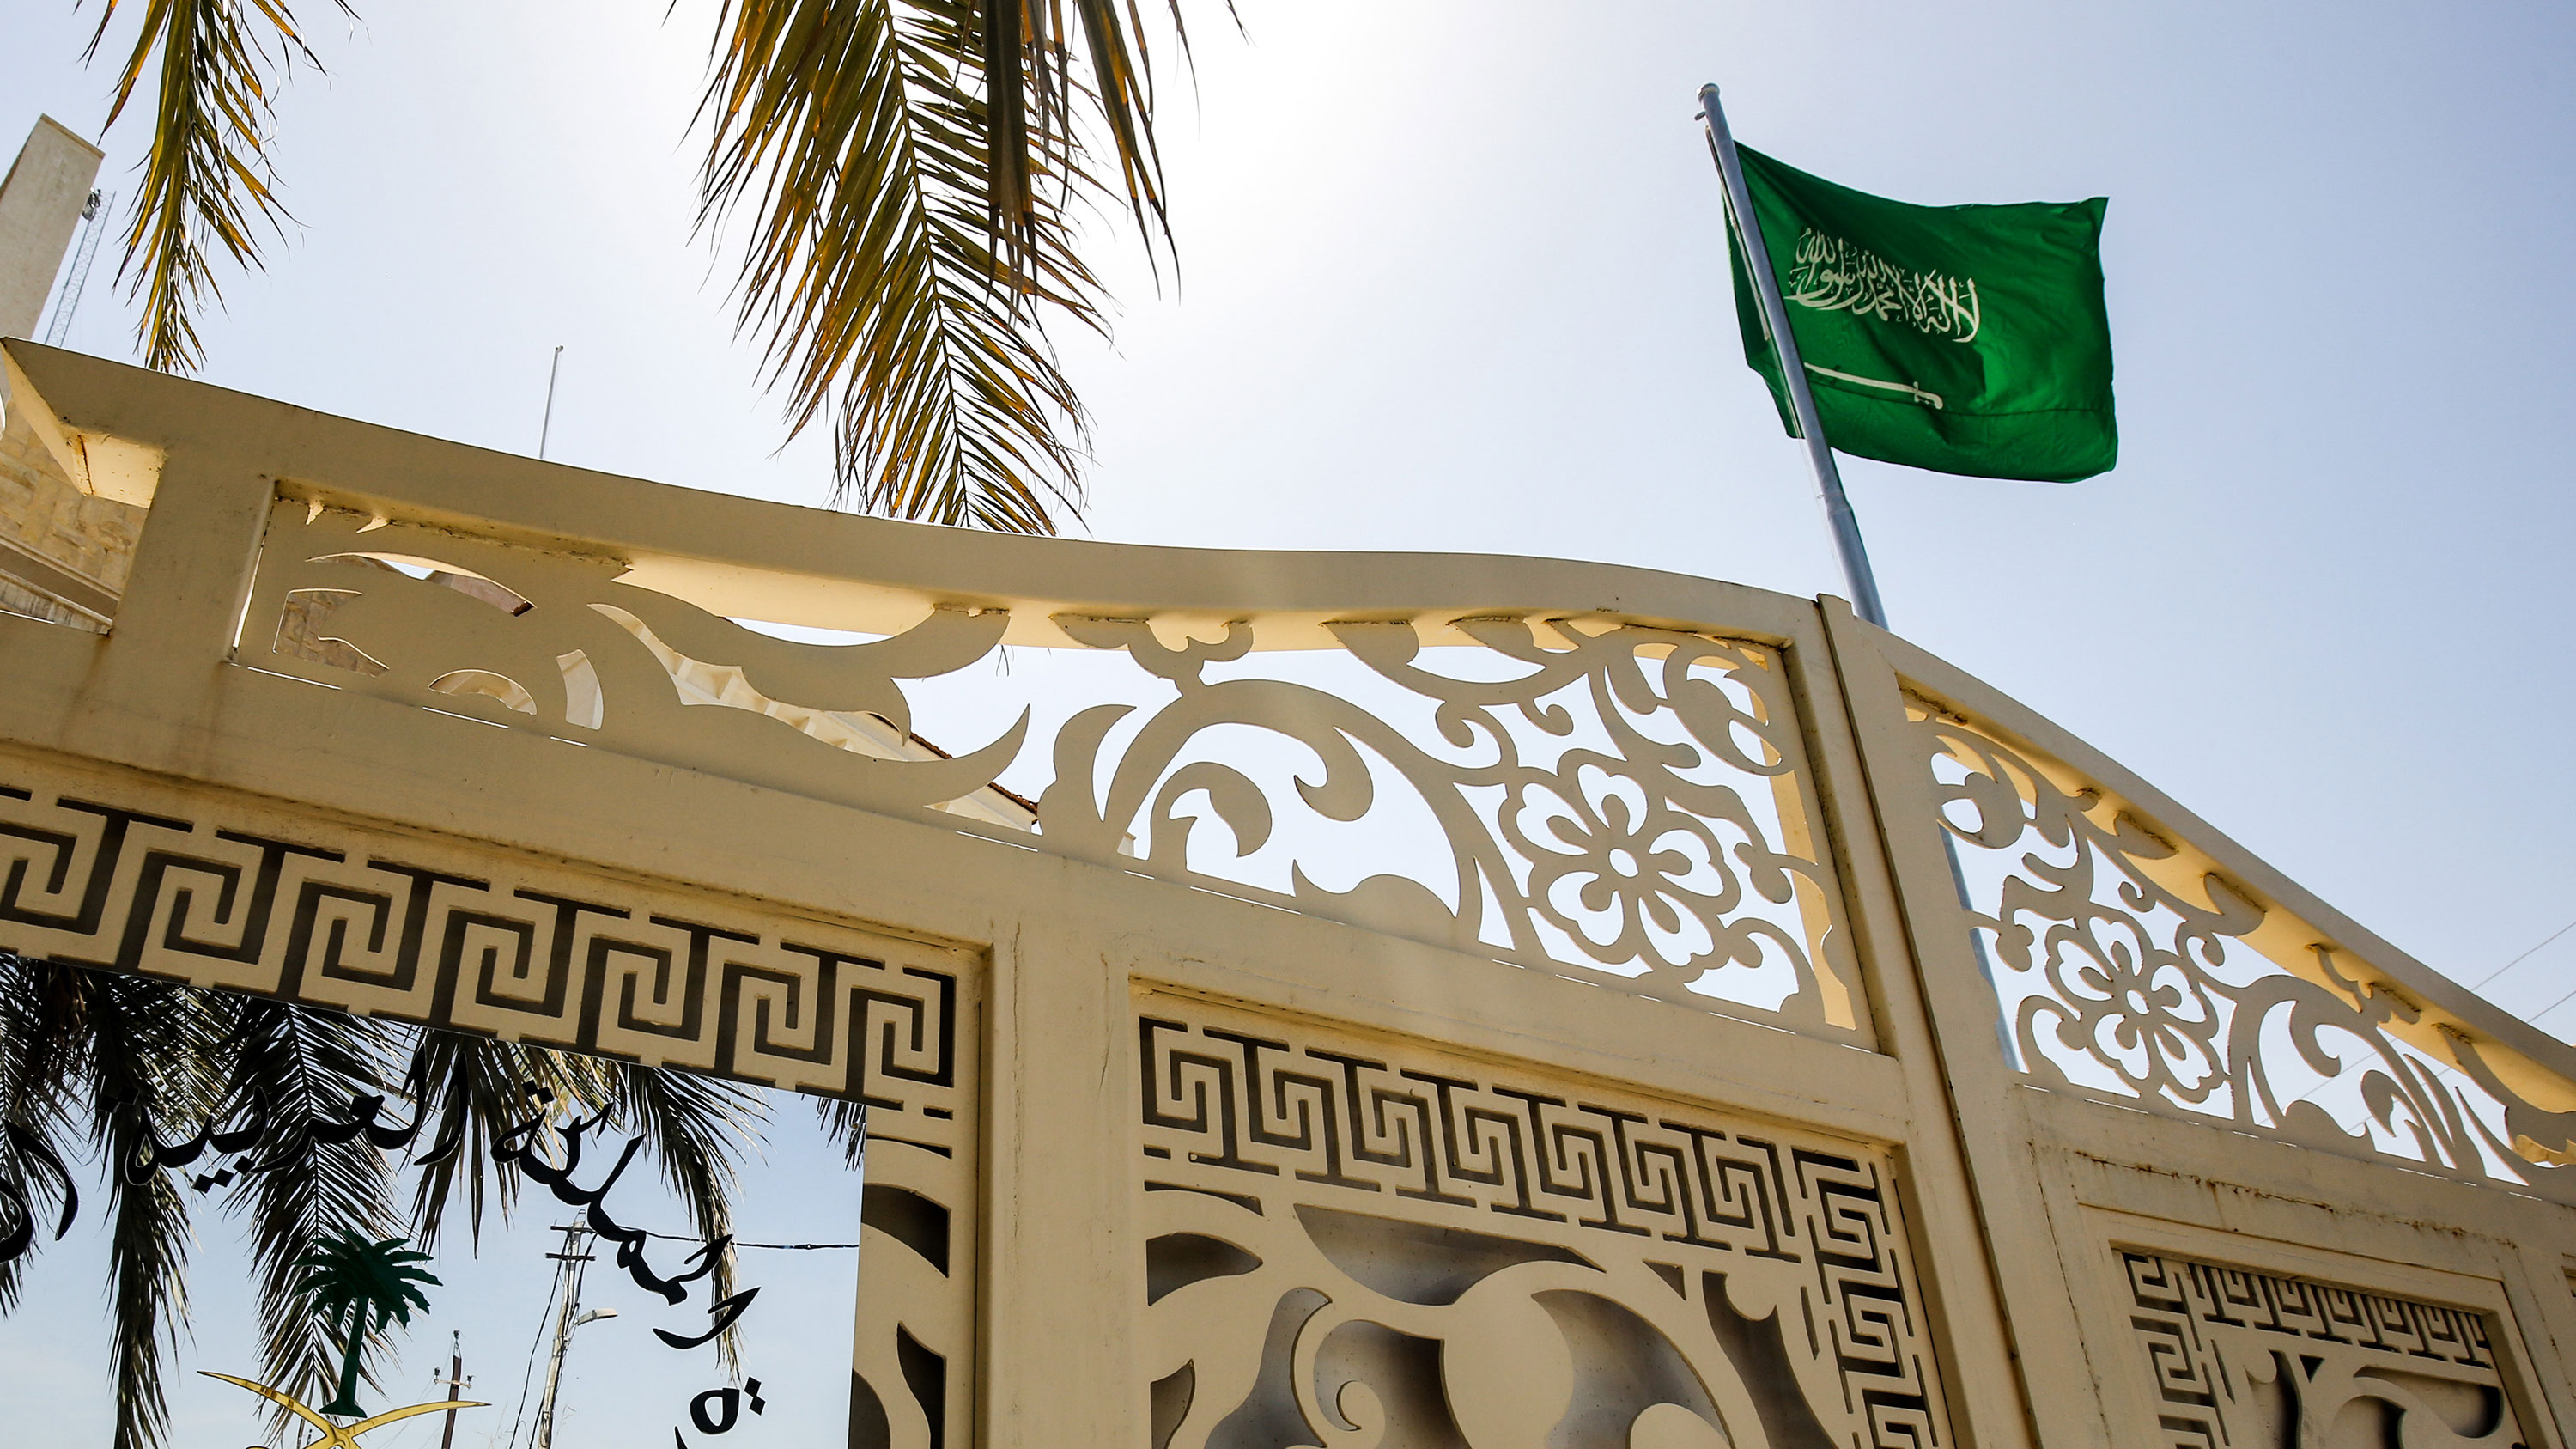 The Saudi Arabian flag flies above the Saudi consulate headquarters in Baghdad on April 4, 2019.